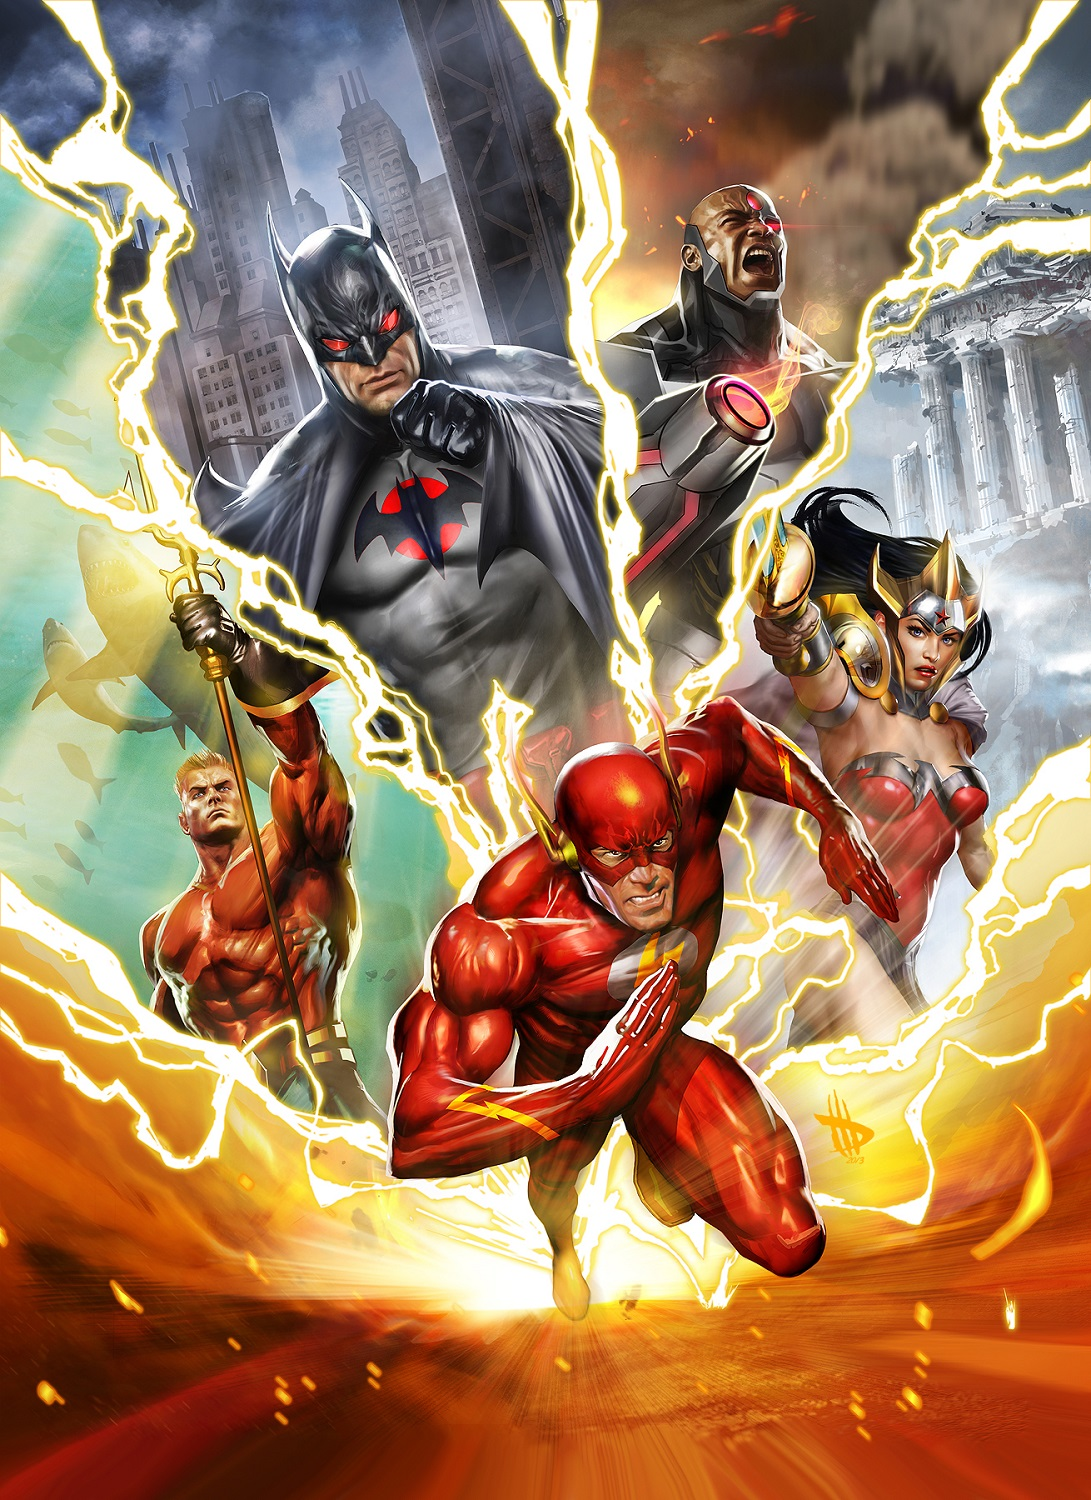 JUSTICE_LEAGUE_THE_FLASHPOINT_PARADOX.jpg